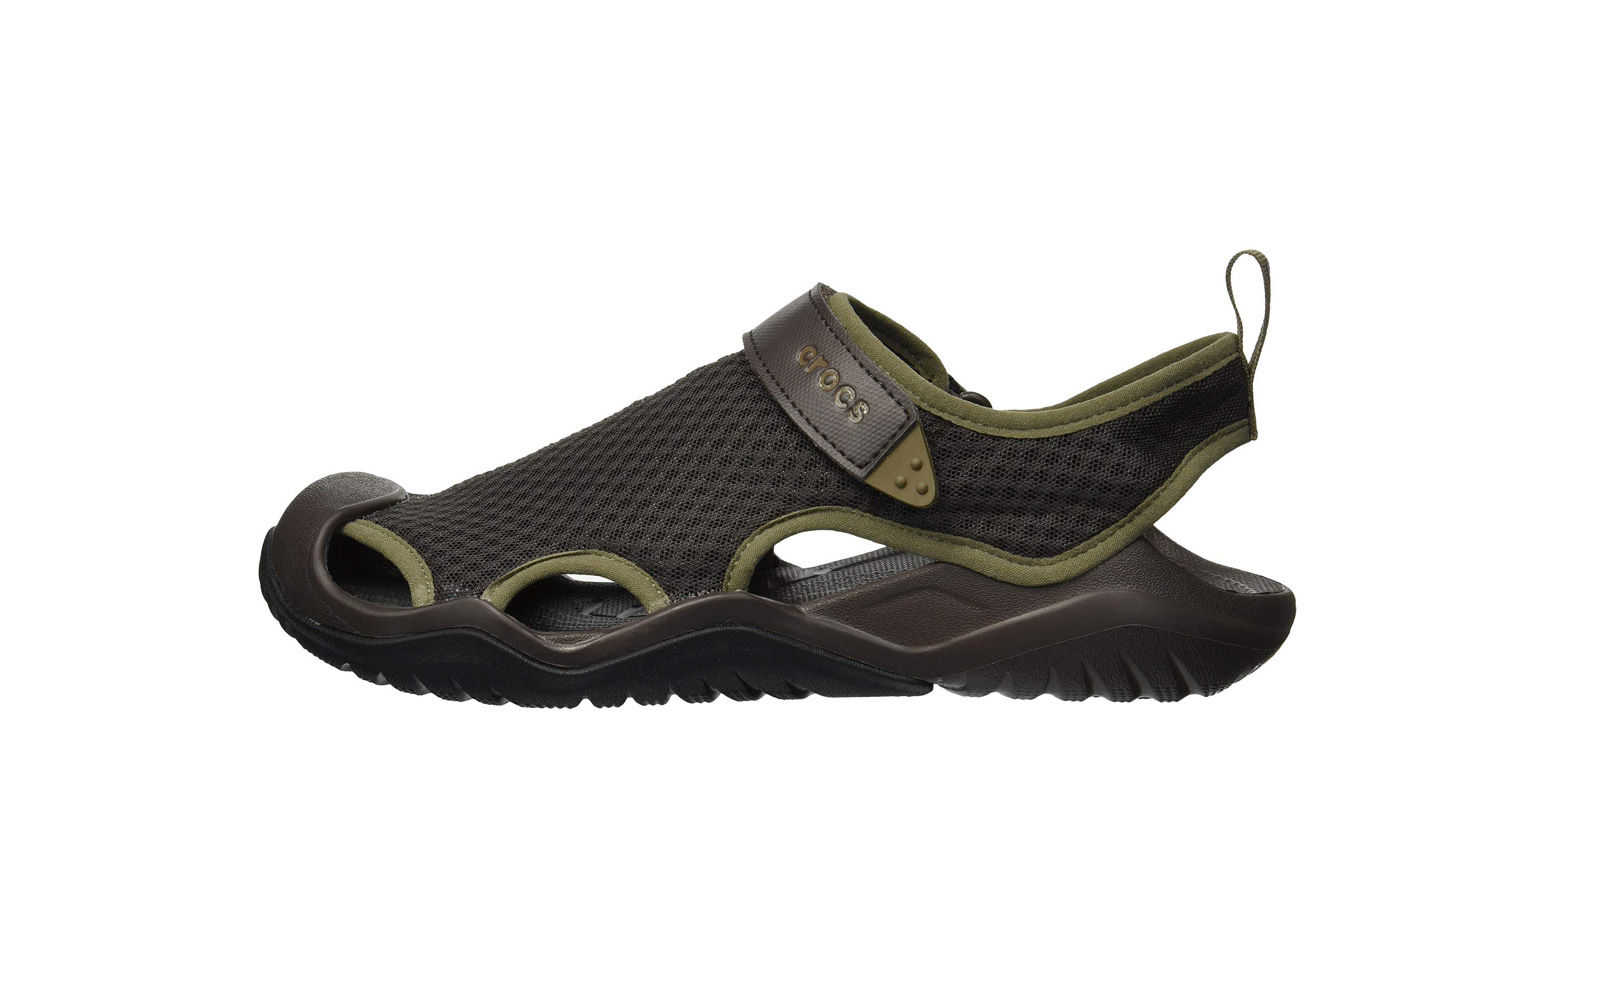 3c323fc70a58d5 The Best Men s Sandals to Pack for Your Next Vacation